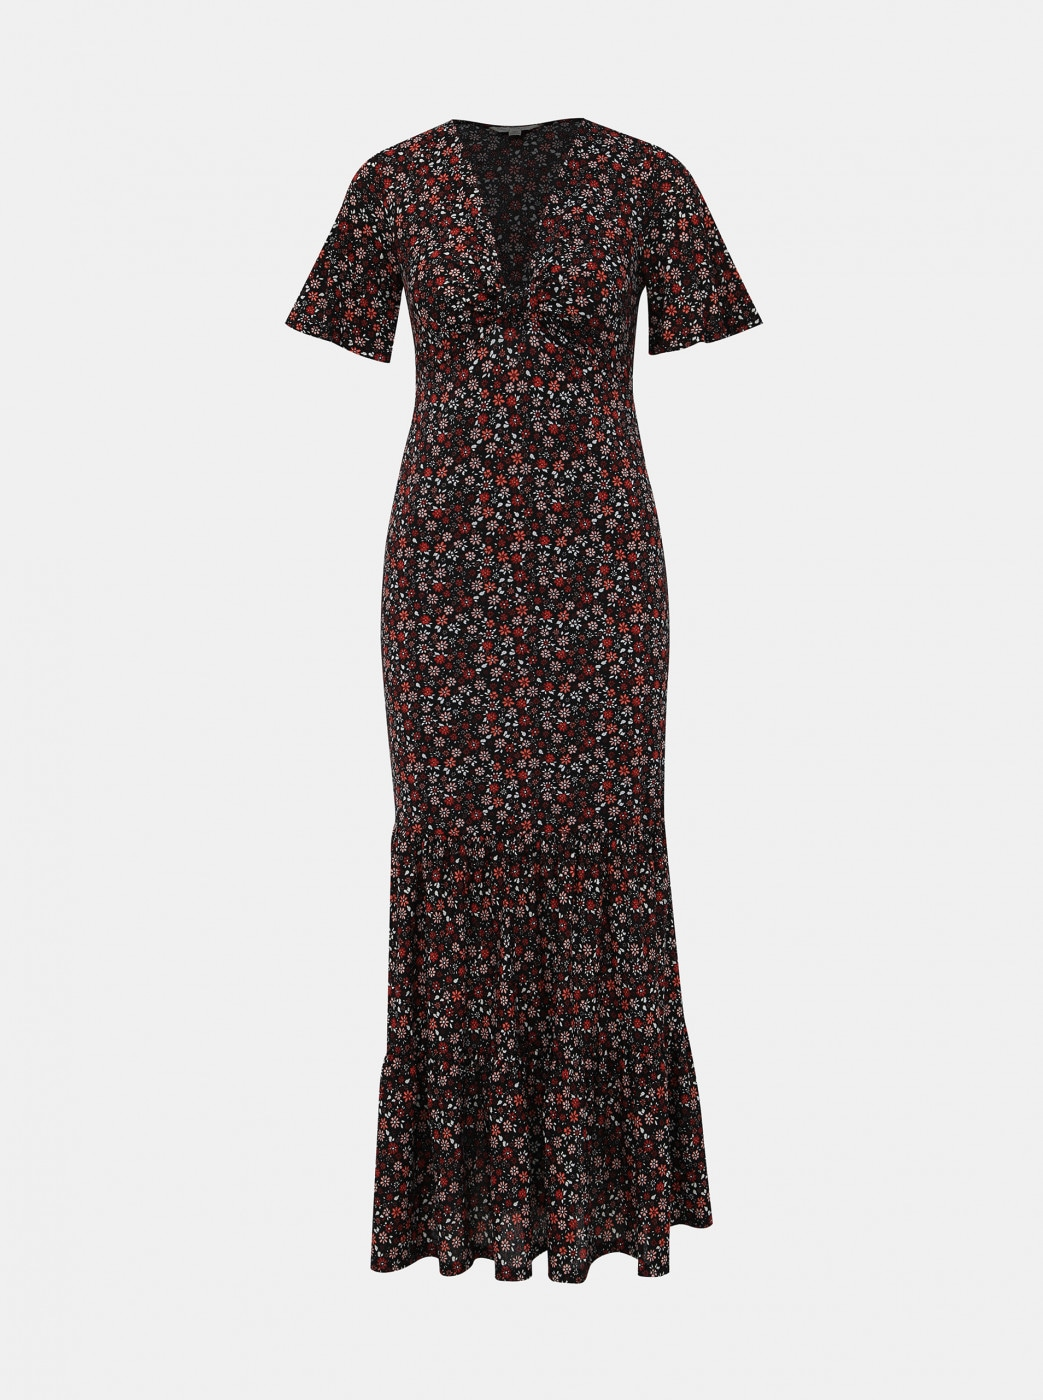 Miss Selfridge's Red-Black Floral Maxi dress